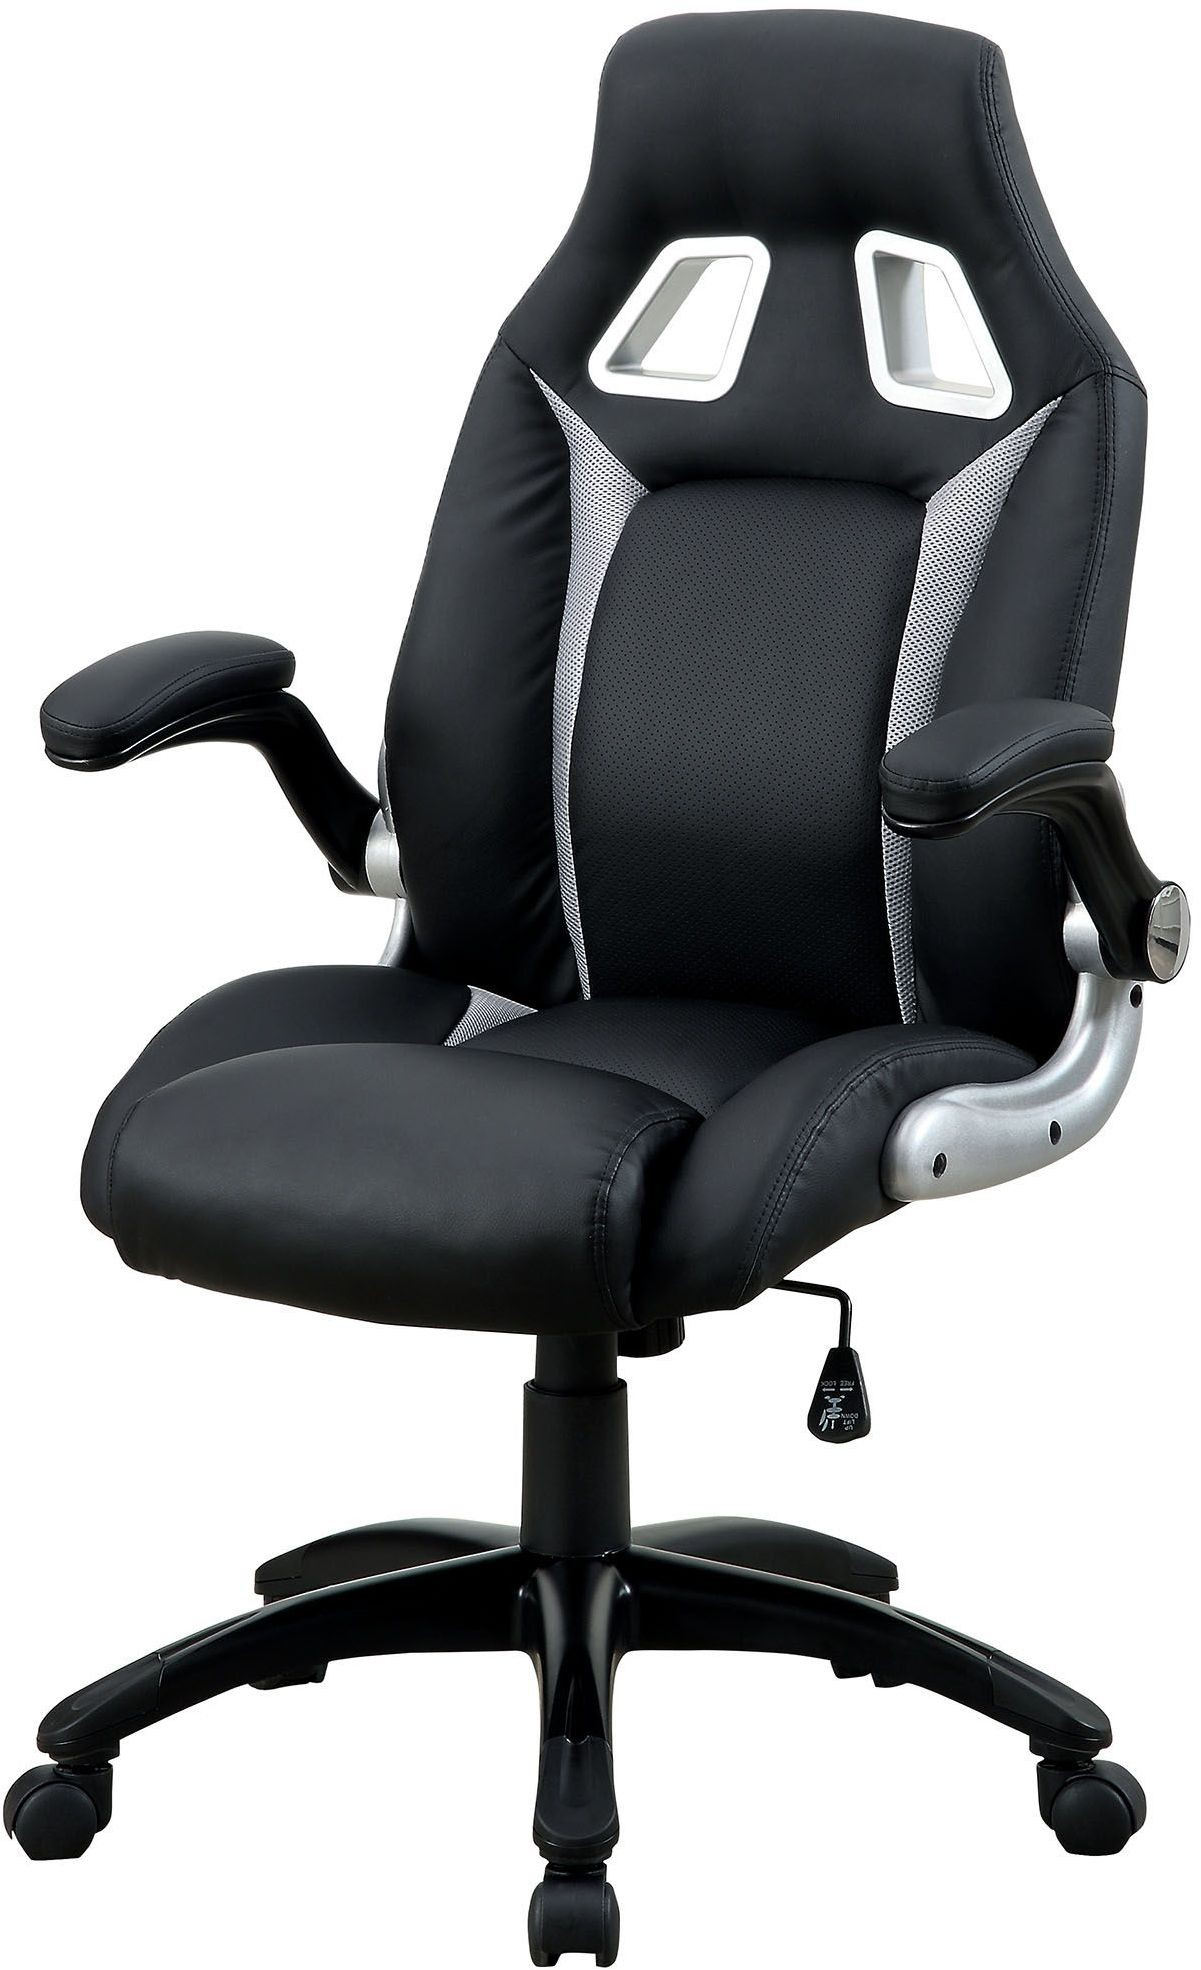 argon gray leather adjustable height office chair cm